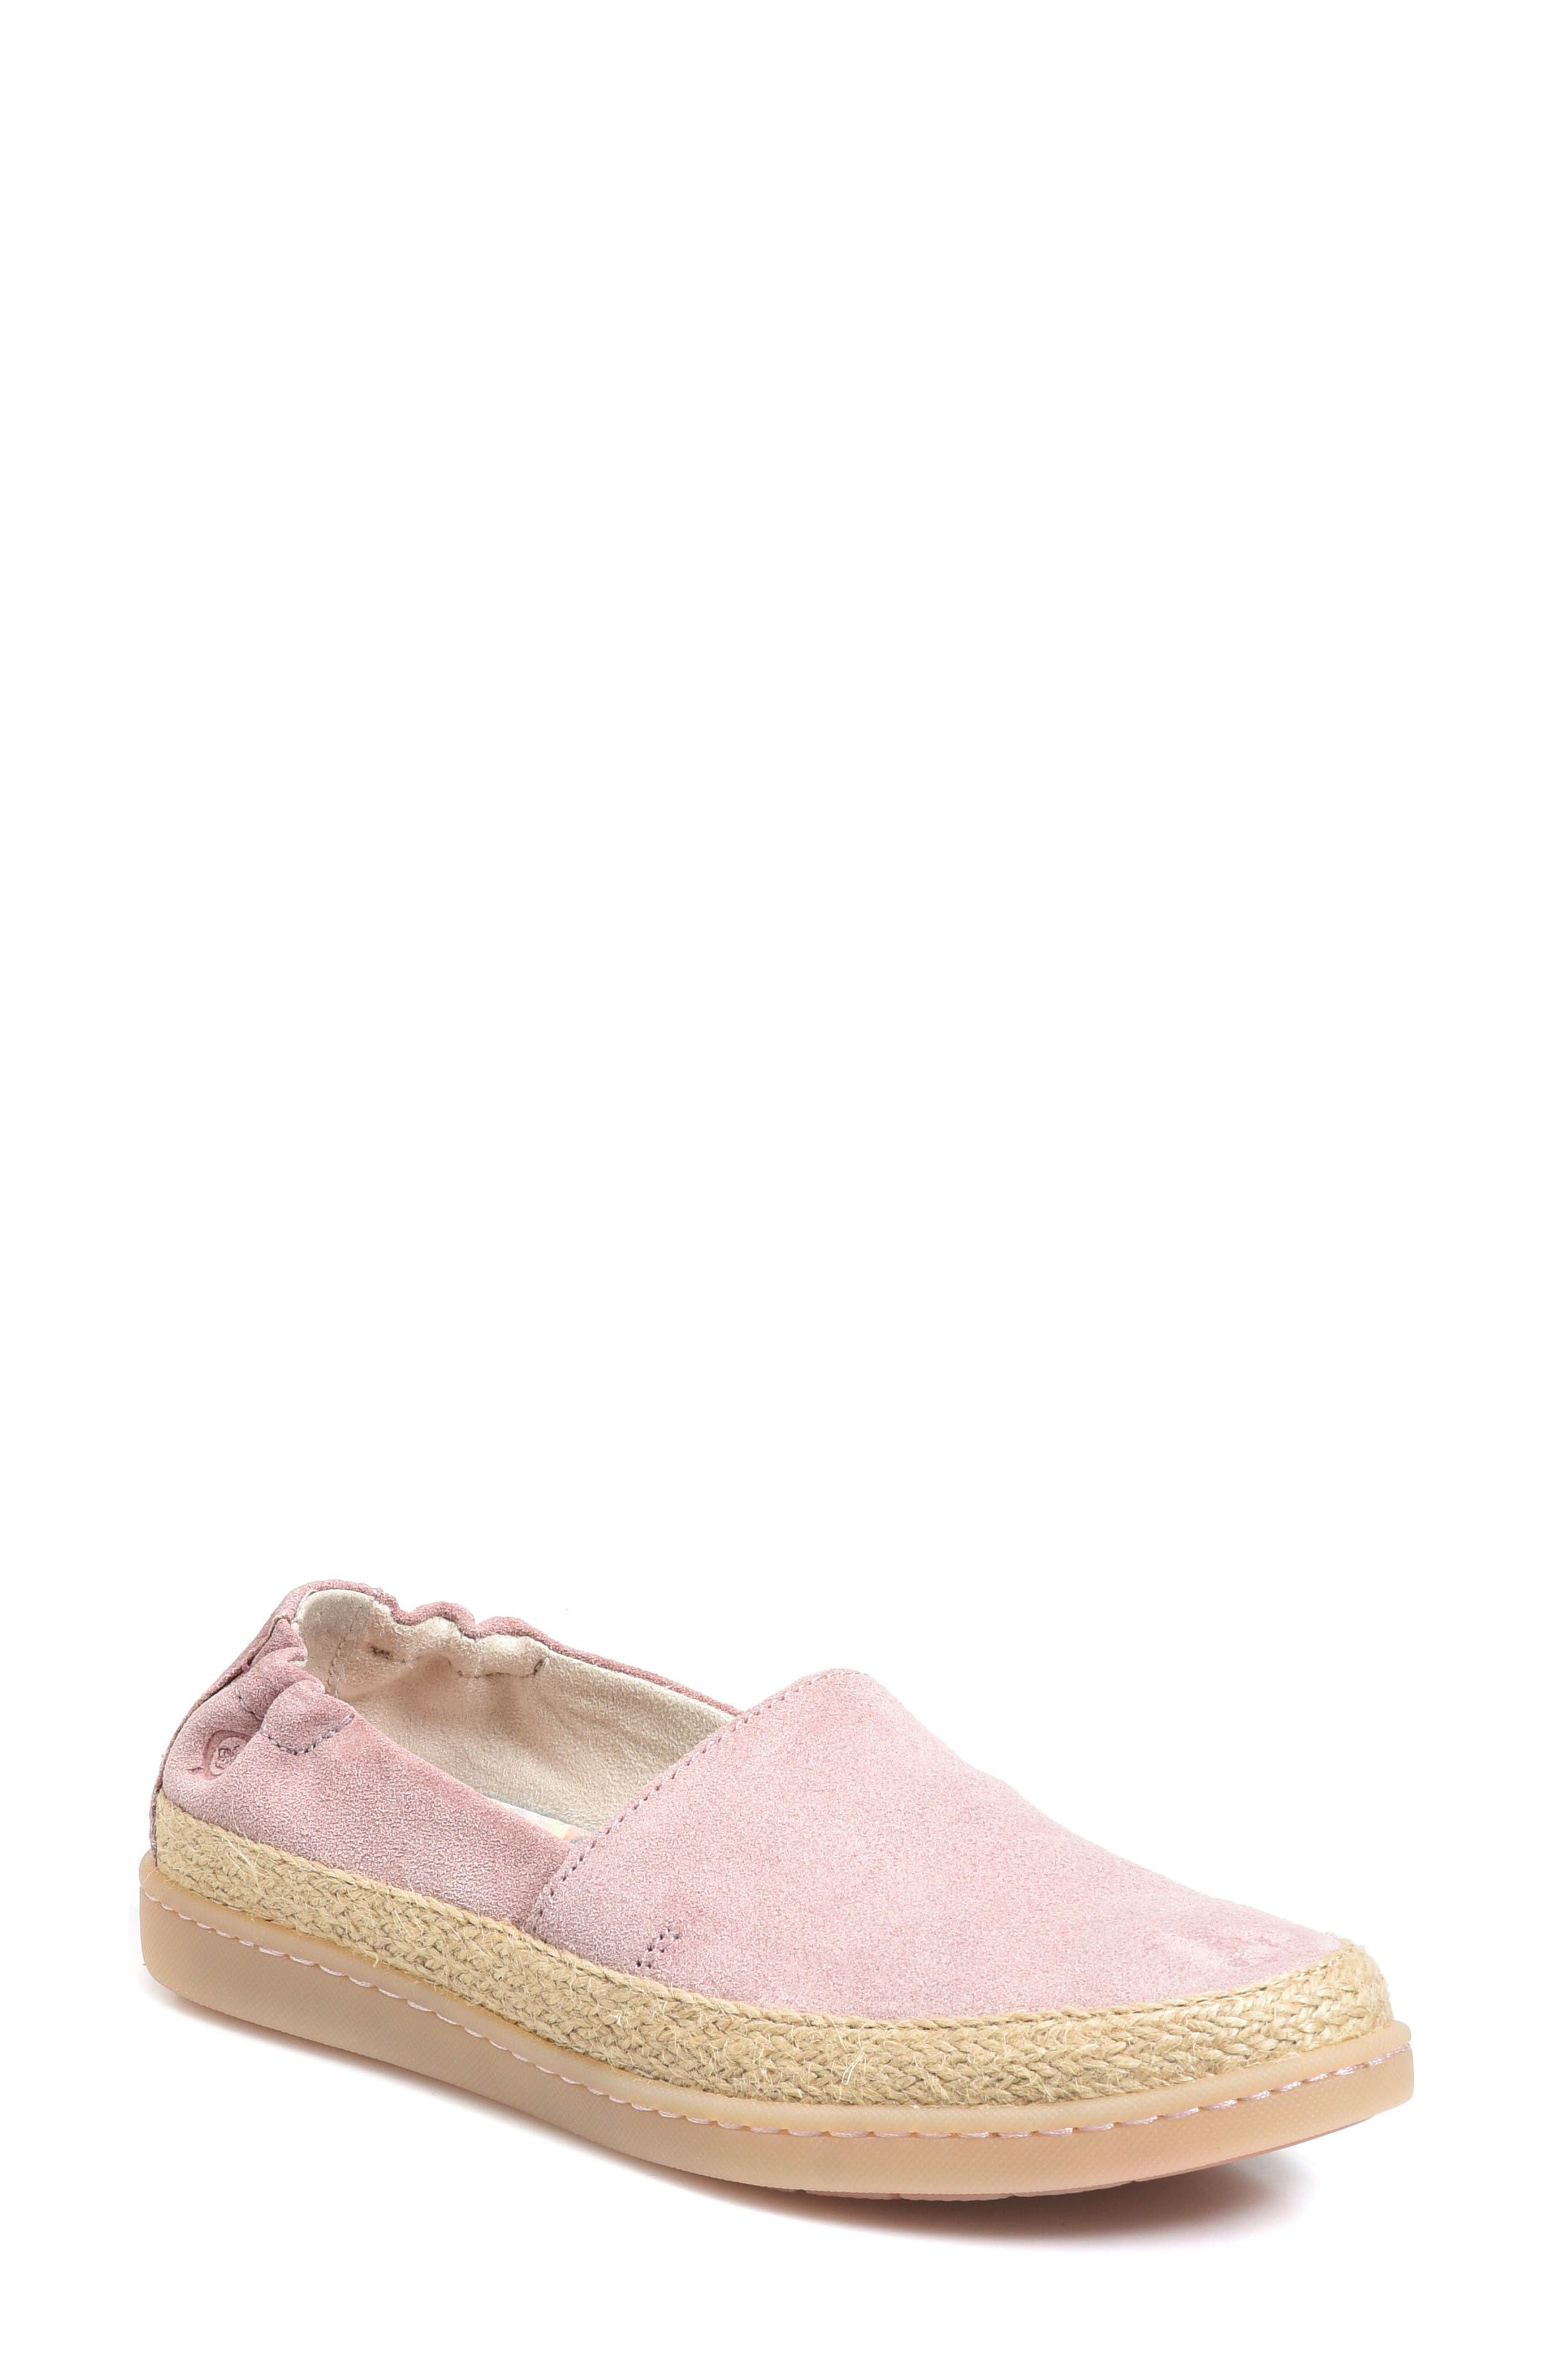 Castries Flat,                             Main thumbnail 1, color,                             Pink Suede